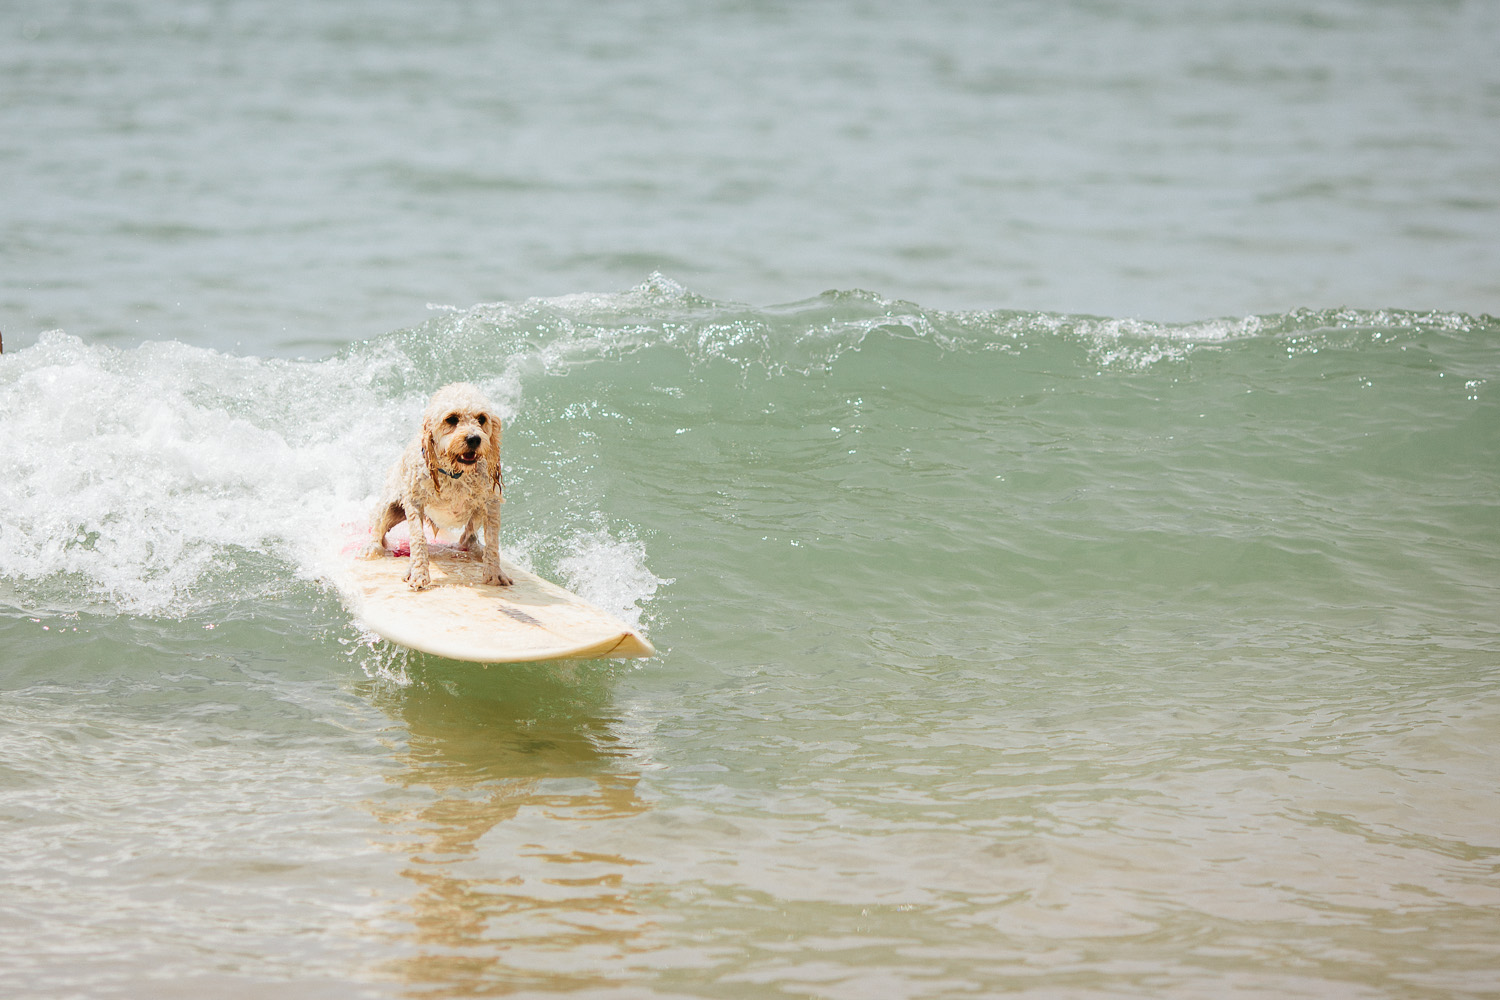 Gnarley Marley surfing cavoodle dog Central Coast-1.jpg